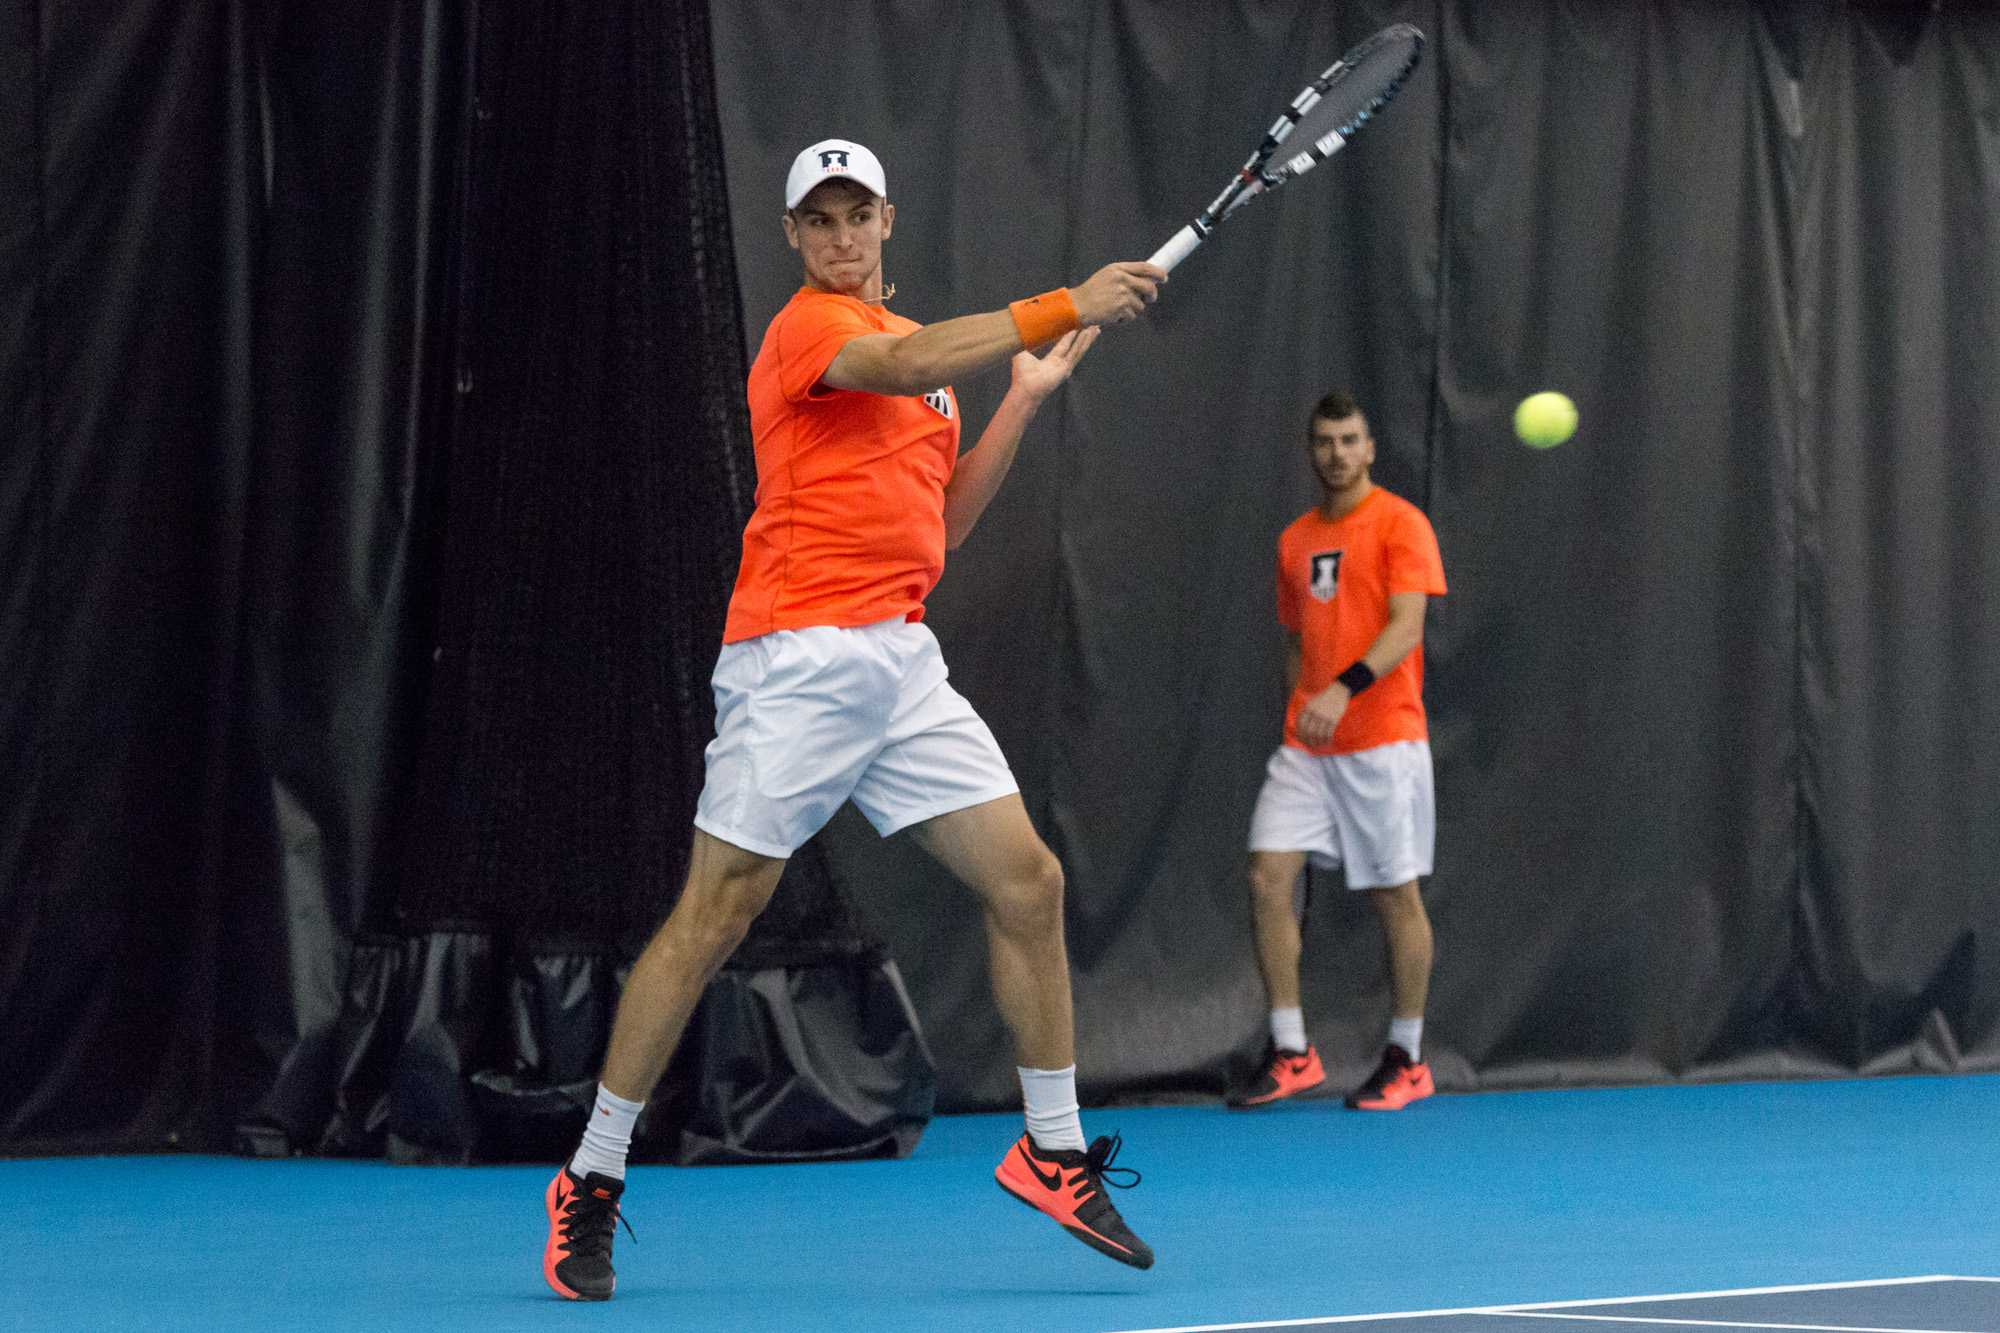 Illinois' Aleks Vukic returns the ball during his singles match agaisnt Wisconsin's Josef Dodridge. Vukic won his singles match 6-2, 6-1 and the team defeated the Badgers 4-0.